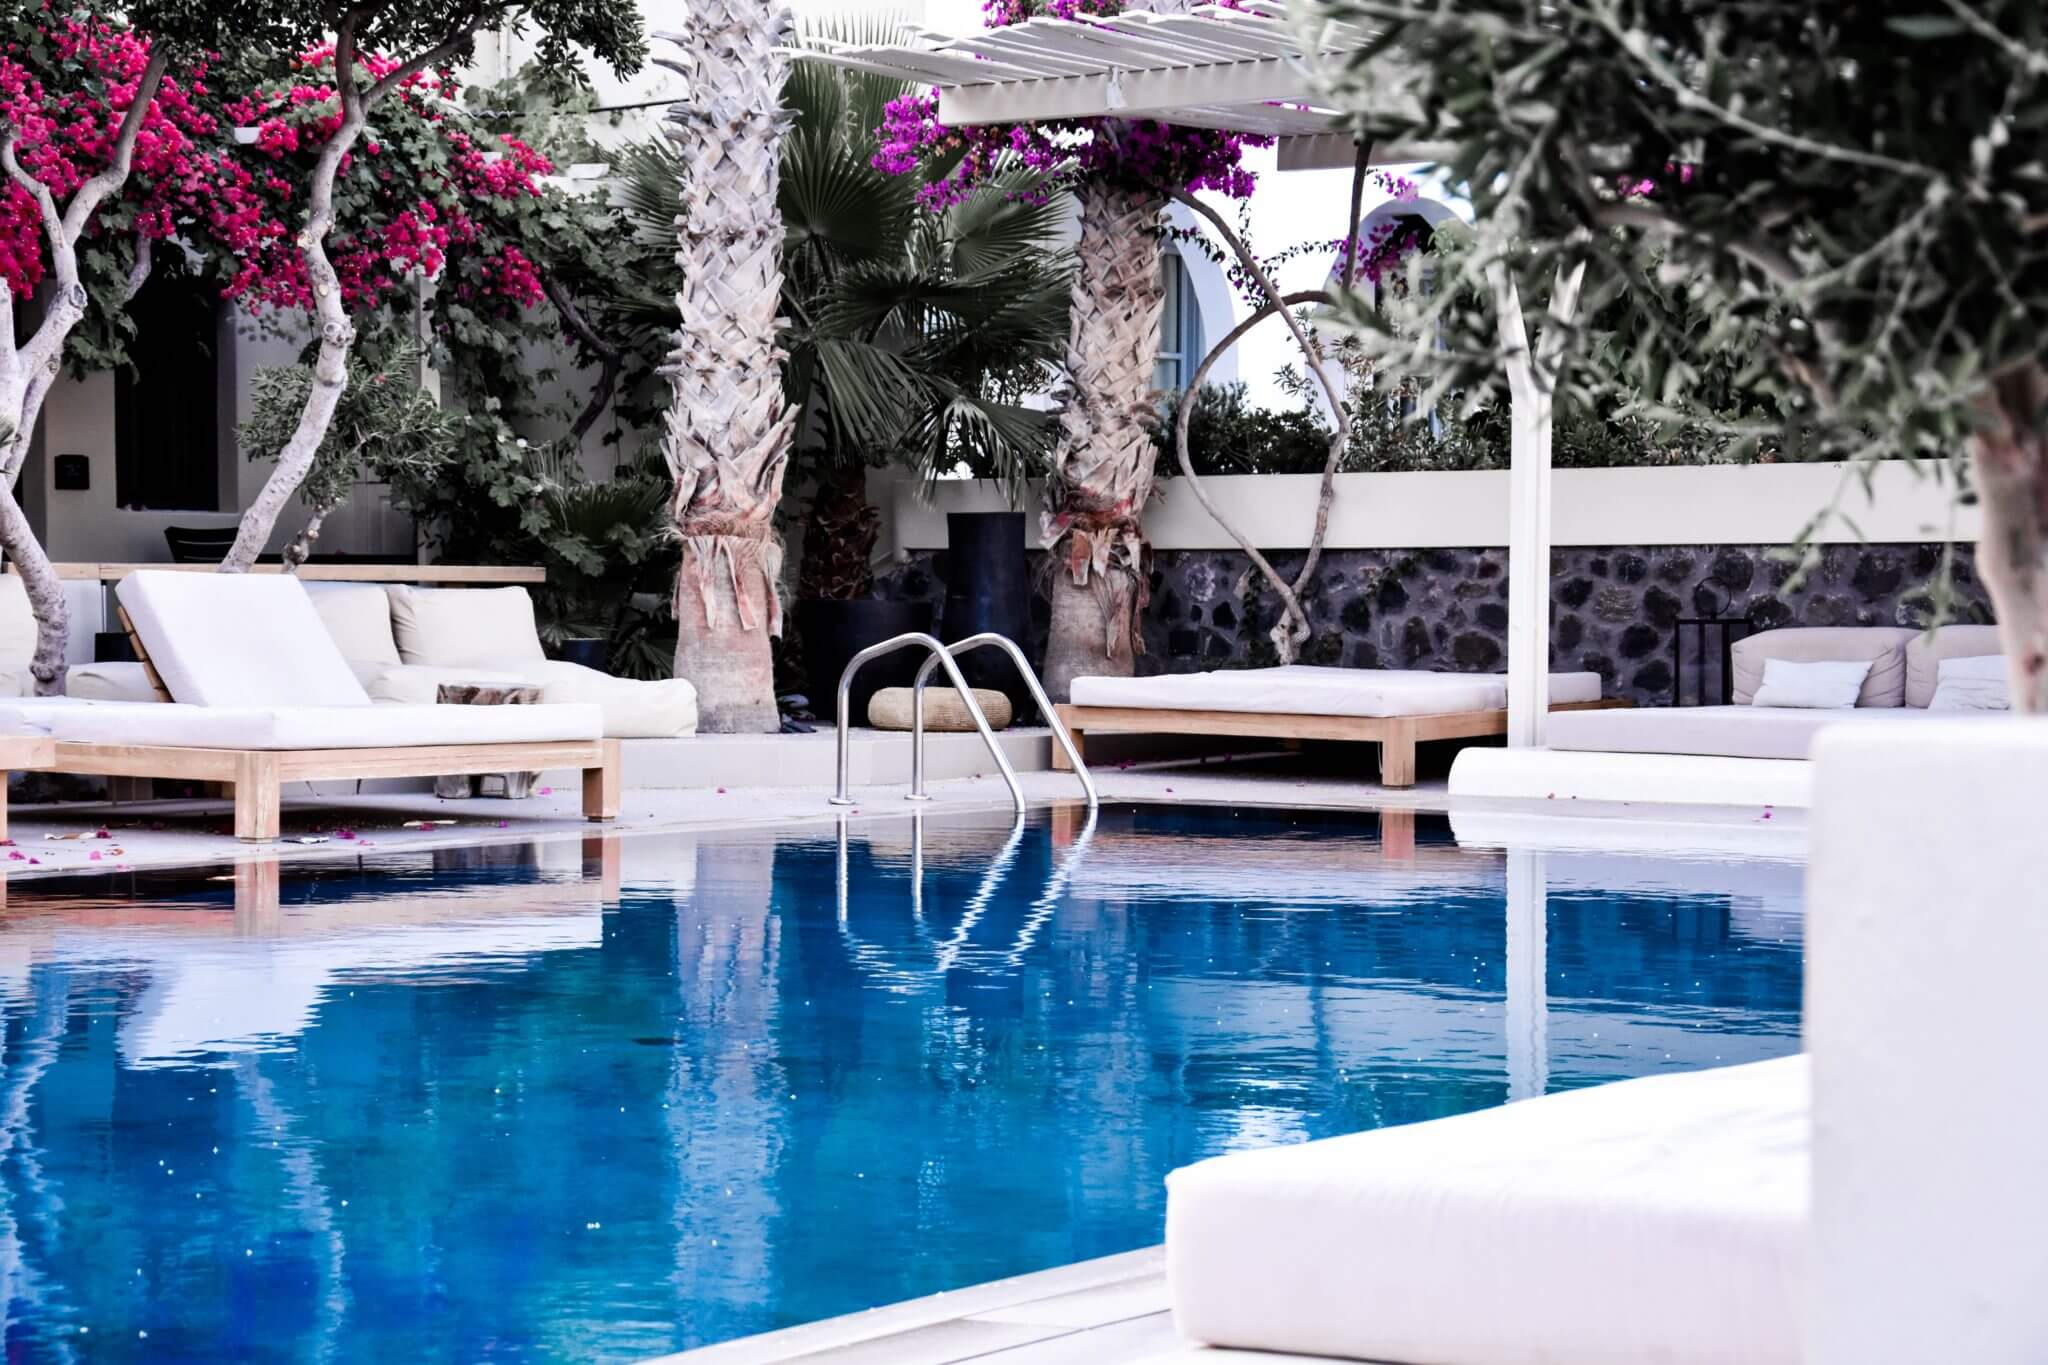 10 Best Pool Designs for Your Backyard